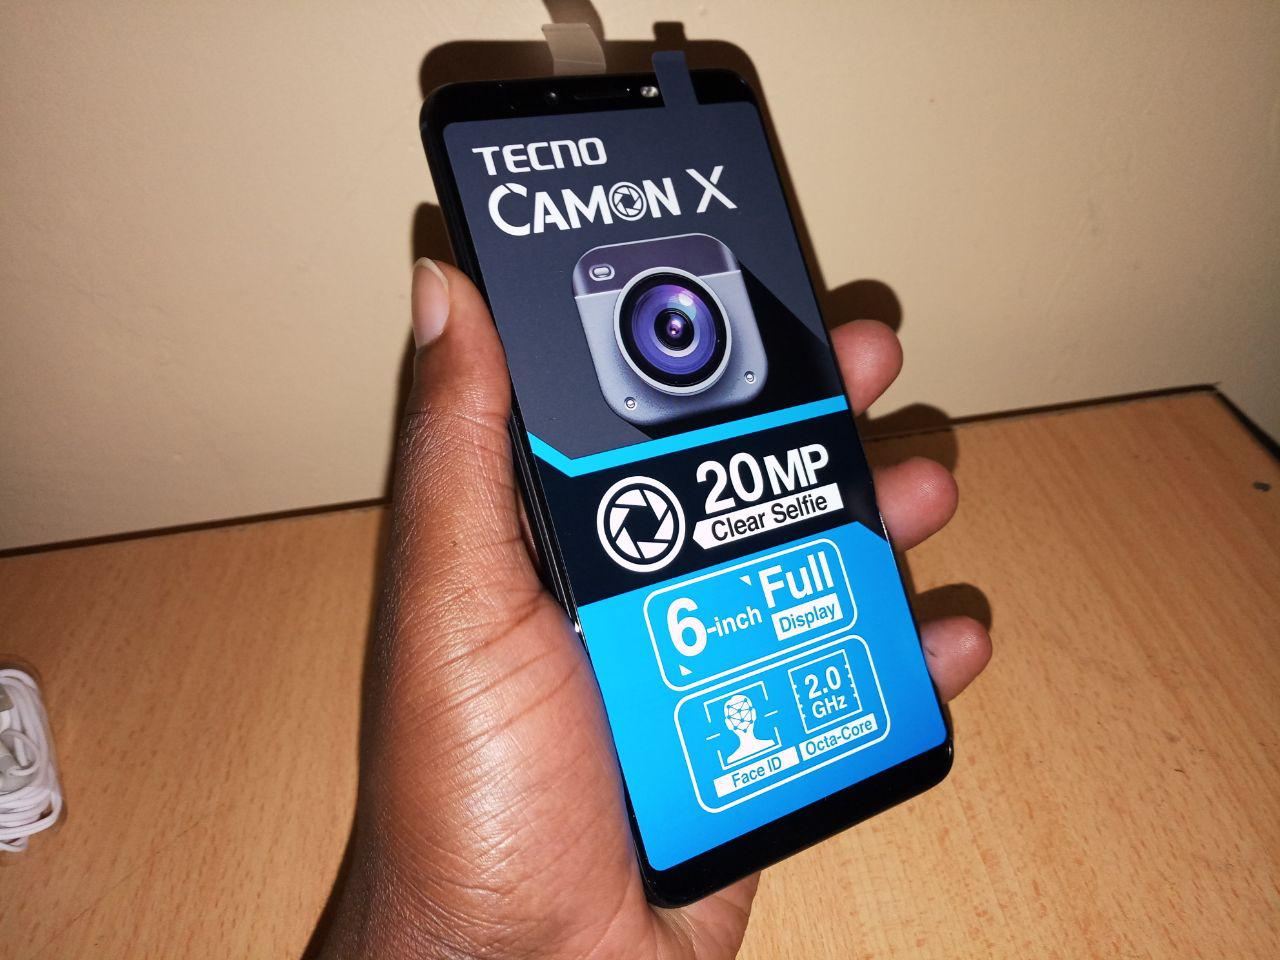 Tecno Camon X Unboxing and first impressions - TechTrendsKE